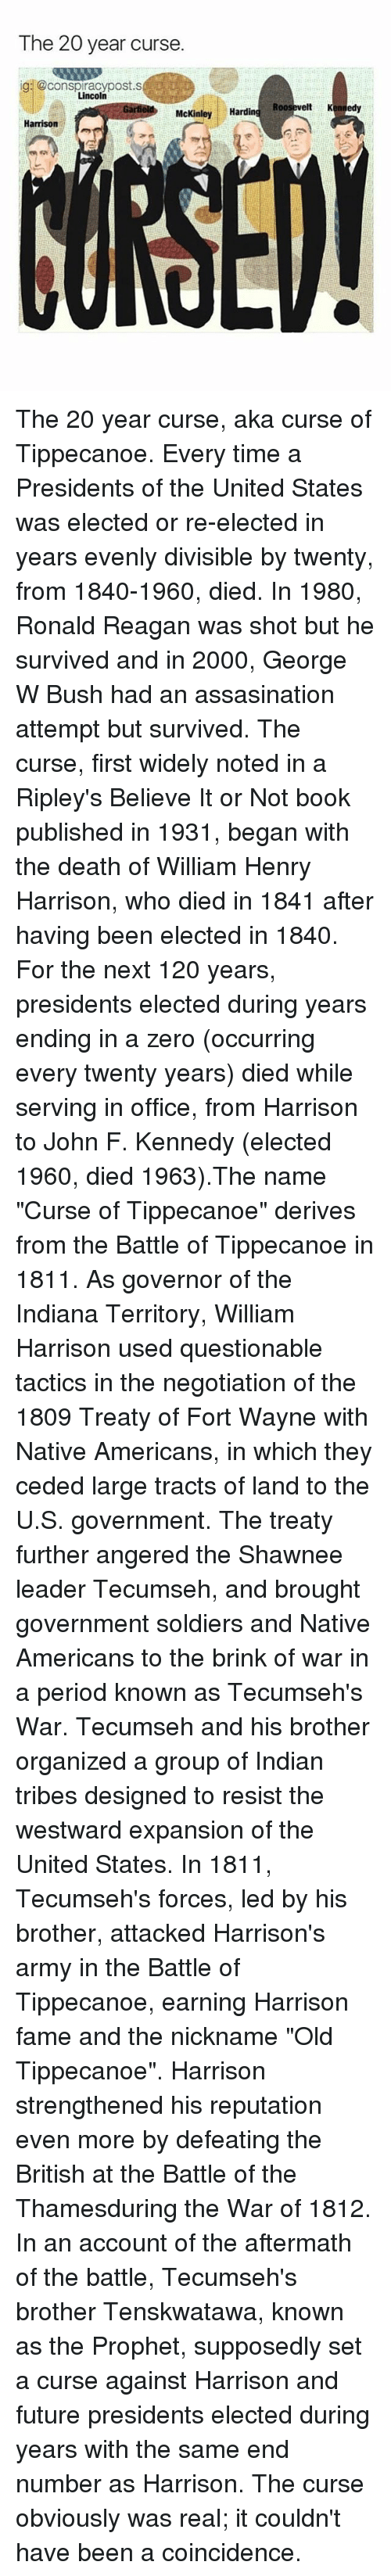 """mckinley: The 20 year curse.  ig: @conspiracypostis  ii  Lincoln  McKinley  Hardin  Roosevelt Kennedy  Harrison The 20 year curse, aka curse of Tippecanoe. Every time a Presidents of the United States was elected or re-elected in years evenly divisible by twenty, from 1840-1960, died. In 1980, Ronald Reagan was shot but he survived and in 2000, George W Bush had an assasination attempt but survived. The curse, first widely noted in a Ripley's Believe It or Not book published in 1931, began with the death of William Henry Harrison, who died in 1841 after having been elected in 1840. For the next 120 years, presidents elected during years ending in a zero (occurring every twenty years) died while serving in office, from Harrison to John F. Kennedy (elected 1960, died 1963).The name """"Curse of Tippecanoe"""" derives from the Battle of Tippecanoe in 1811. As governor of the Indiana Territory, William Harrison used questionable tactics in the negotiation of the 1809 Treaty of Fort Wayne with Native Americans, in which they ceded large tracts of land to the U.S. government. The treaty further angered the Shawnee leader Tecumseh, and brought government soldiers and Native Americans to the brink of war in a period known as Tecumseh's War. Tecumseh and his brother organized a group of Indian tribes designed to resist the westward expansion of the United States. In 1811, Tecumseh's forces, led by his brother, attacked Harrison's army in the Battle of Tippecanoe, earning Harrison fame and the nickname """"Old Tippecanoe"""". Harrison strengthened his reputation even more by defeating the British at the Battle of the Thamesduring the War of 1812. In an account of the aftermath of the battle, Tecumseh's brother Tenskwatawa, known as the Prophet, supposedly set a curse against Harrison and future presidents elected during years with the same end number as Harrison. The curse obviously was real; it couldn't have been a coincidence."""